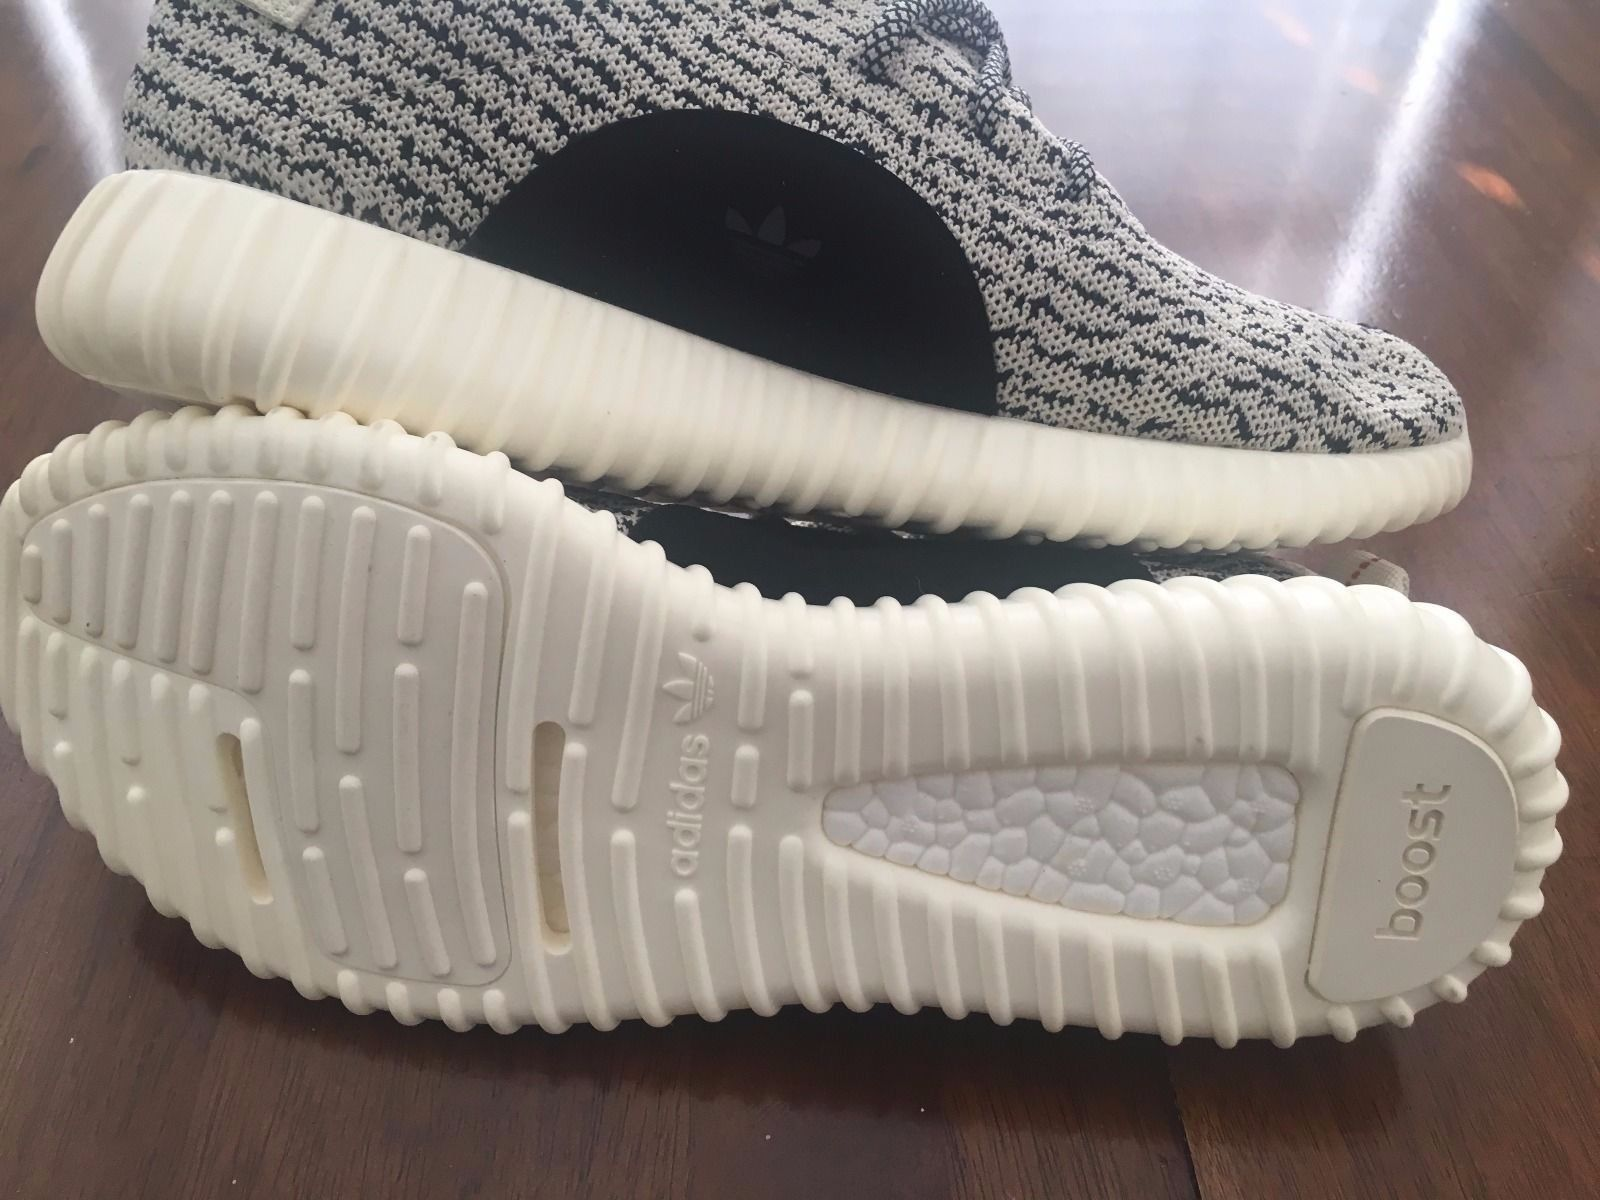 yeezy boost 350 turtle dove adidas adidas nmd white size 10